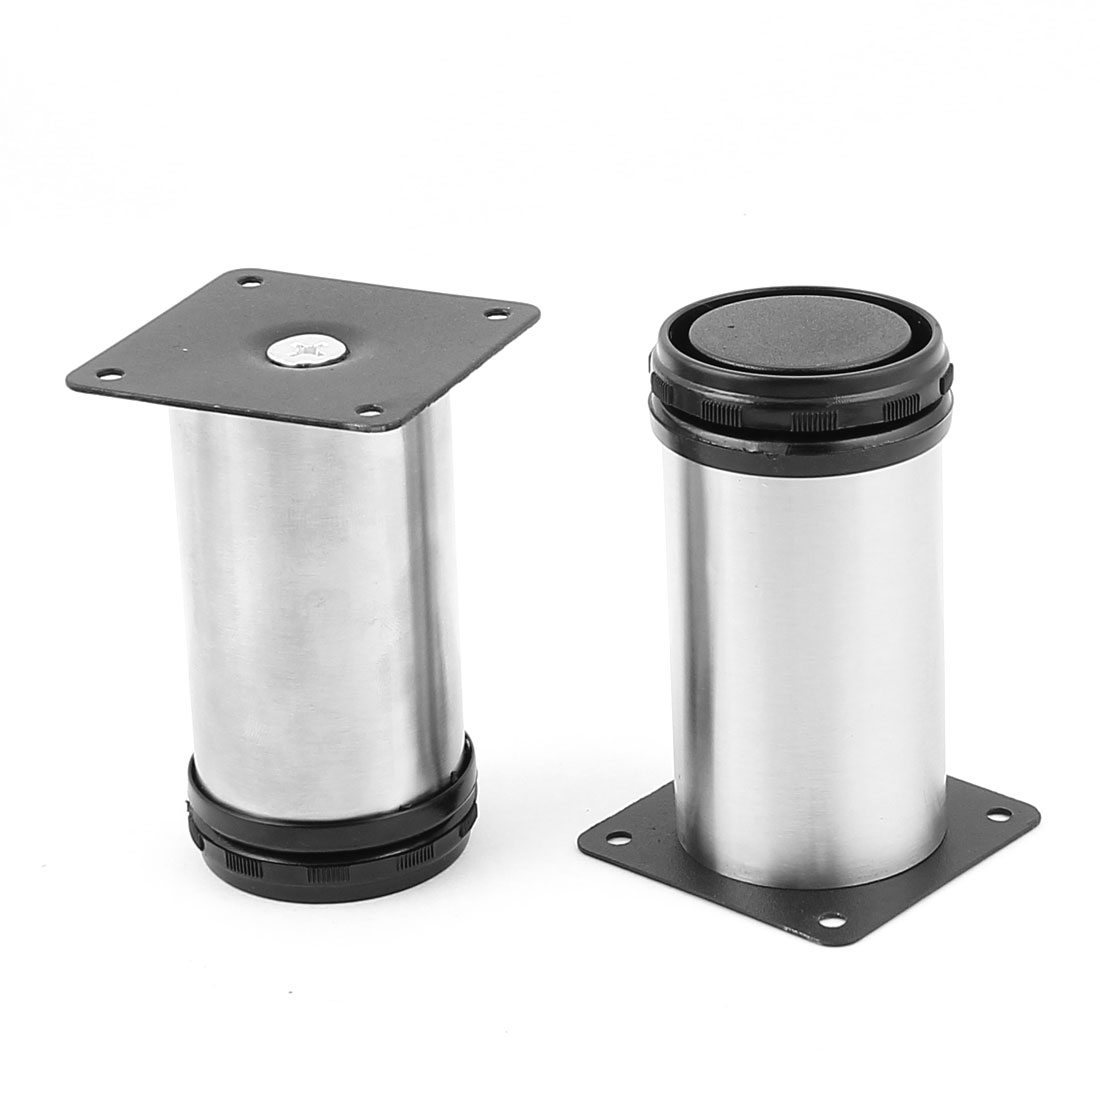 10cm Height Stainless Steel Chair Cabinet Support Adjustable Leg Feet 2Pcs